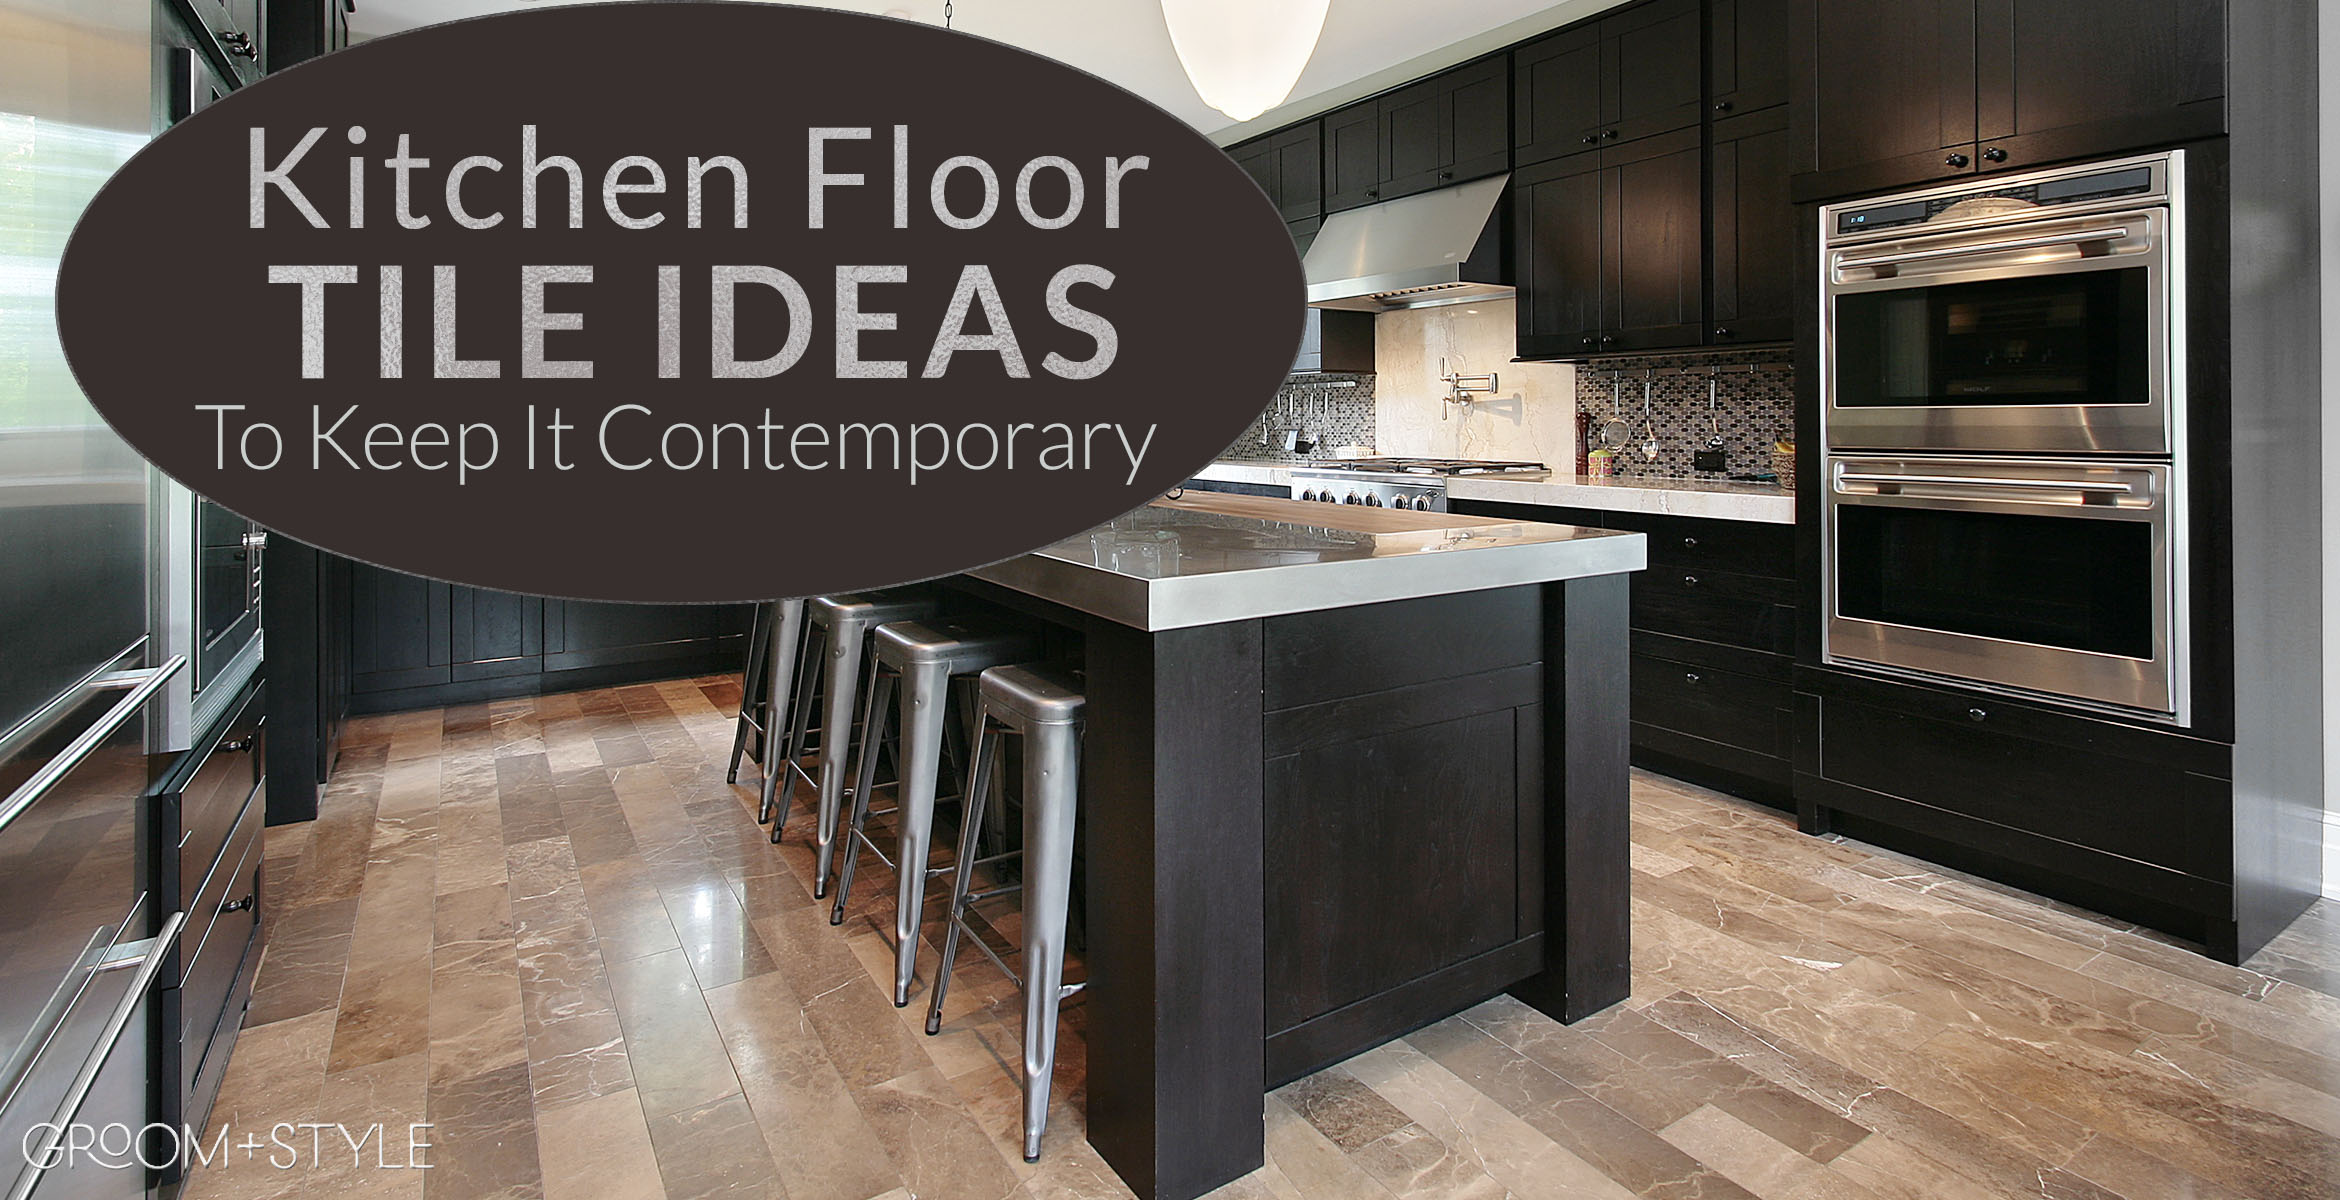 Kitchen Floor Tile Ideas To Keep It Contemporary Groom Style